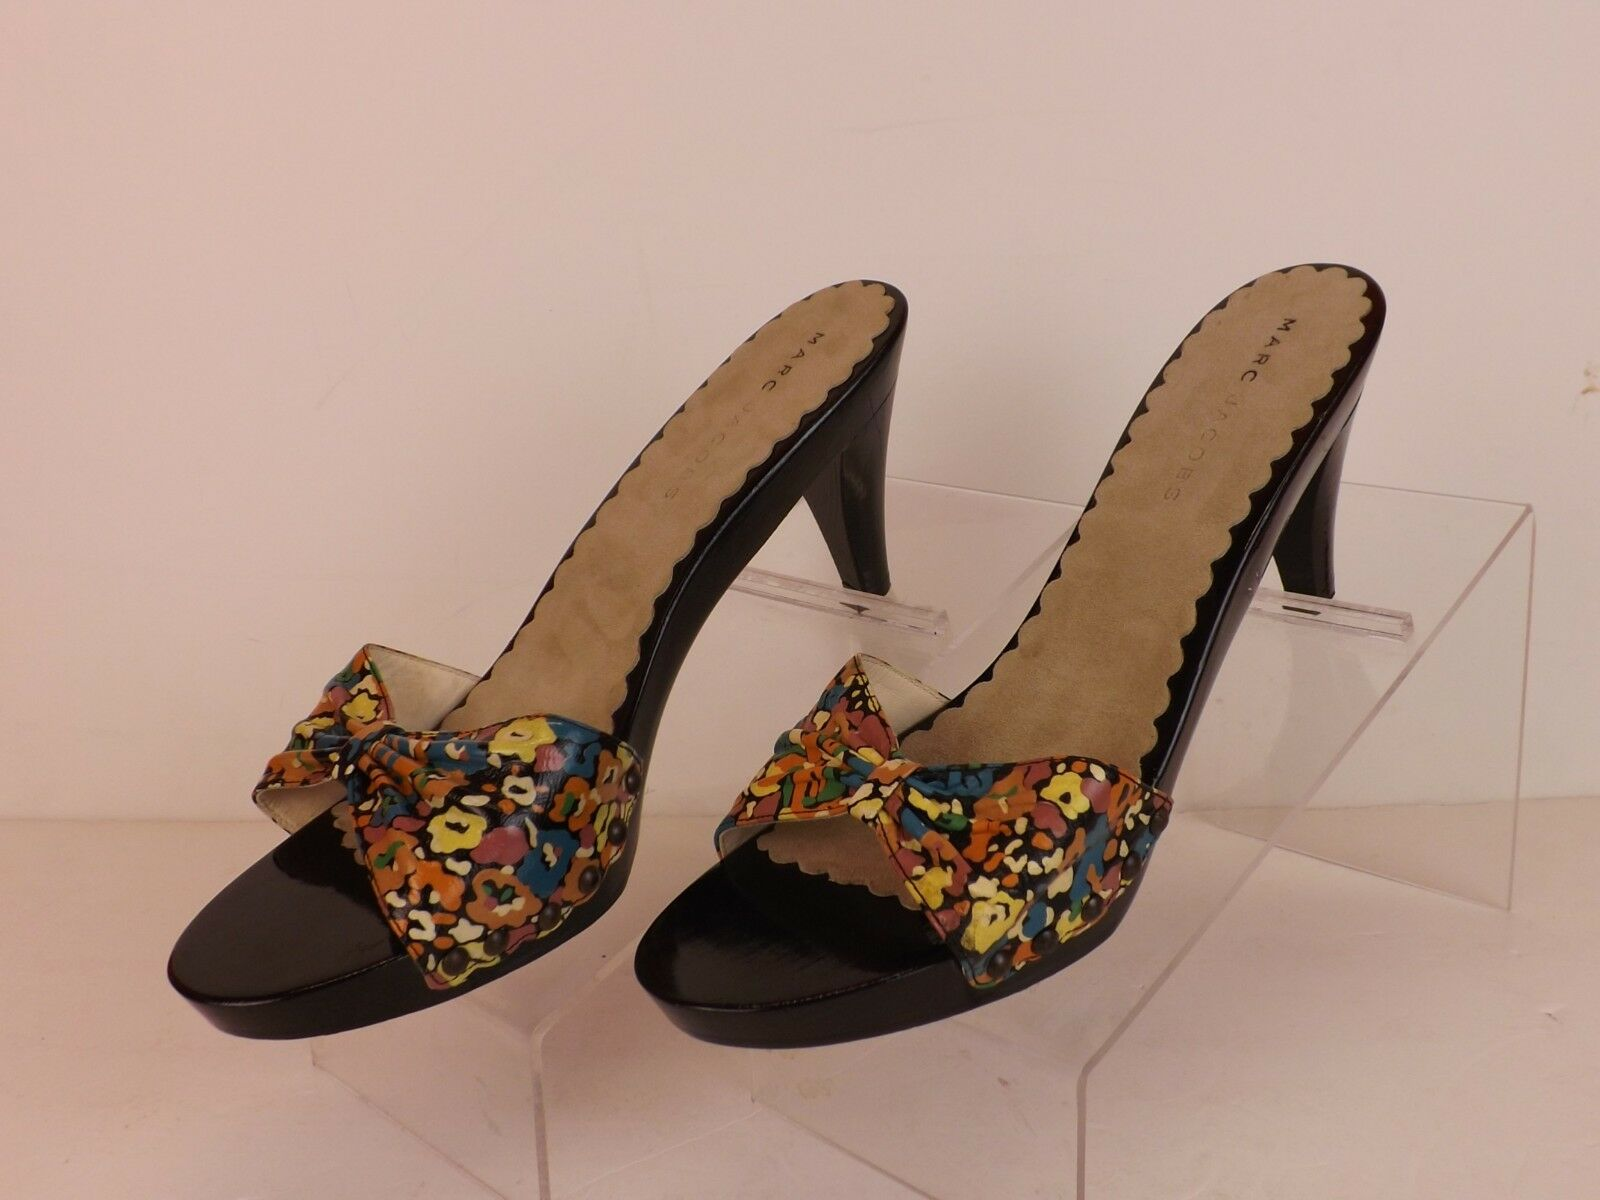 NEW MARC JACOBS MULTI-COLOR LEATHER OPEN TOE MULE PLATFORM SANDALS 37 ITALY